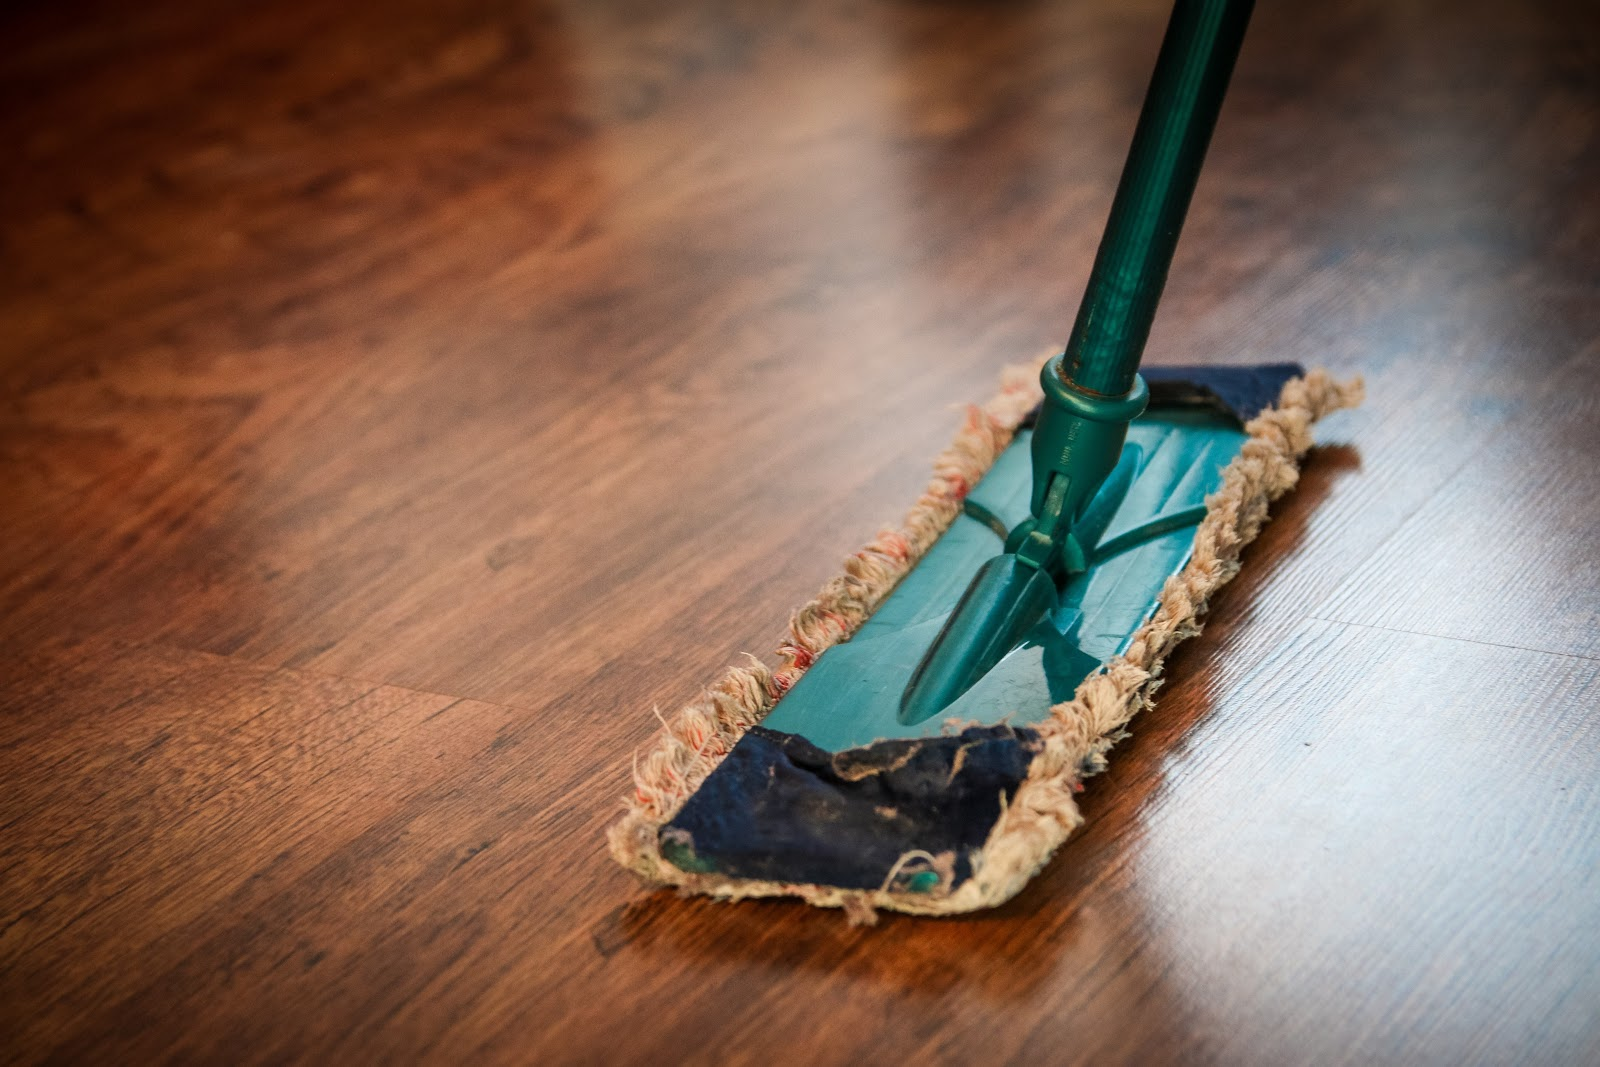 A mop in action on a hardwood floor.